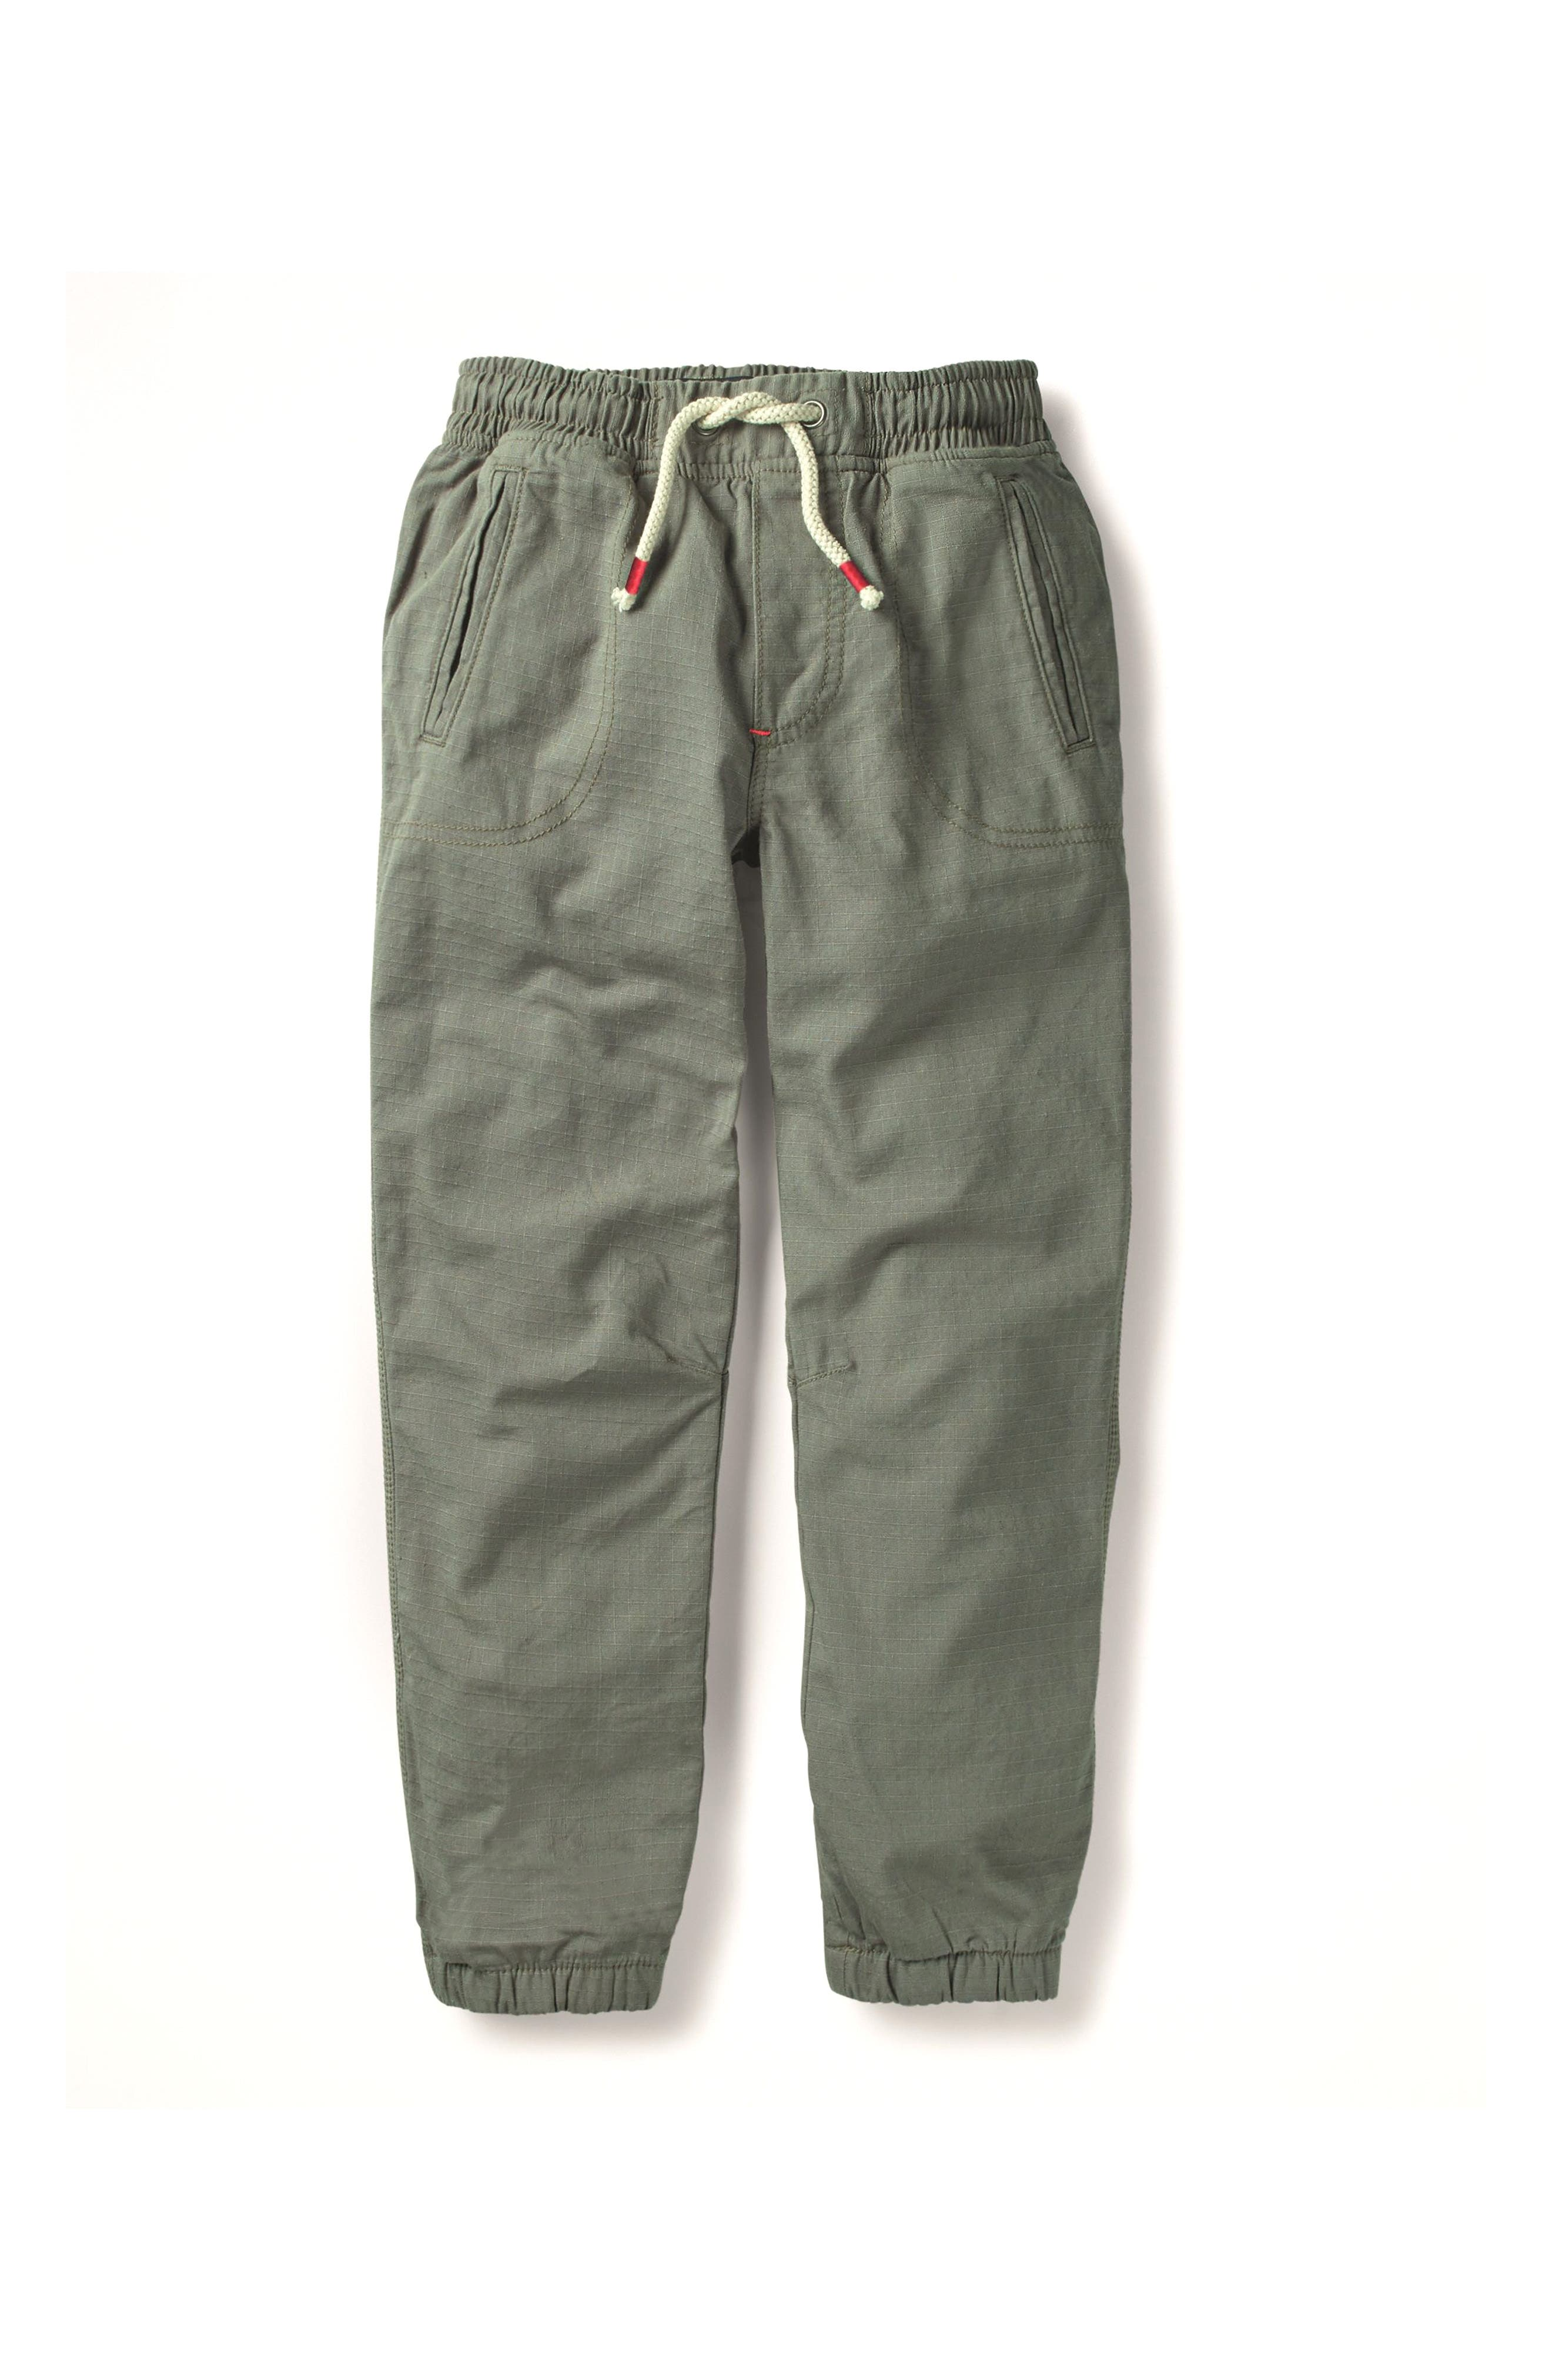 Lined Sweatpants,                         Main,                         color,